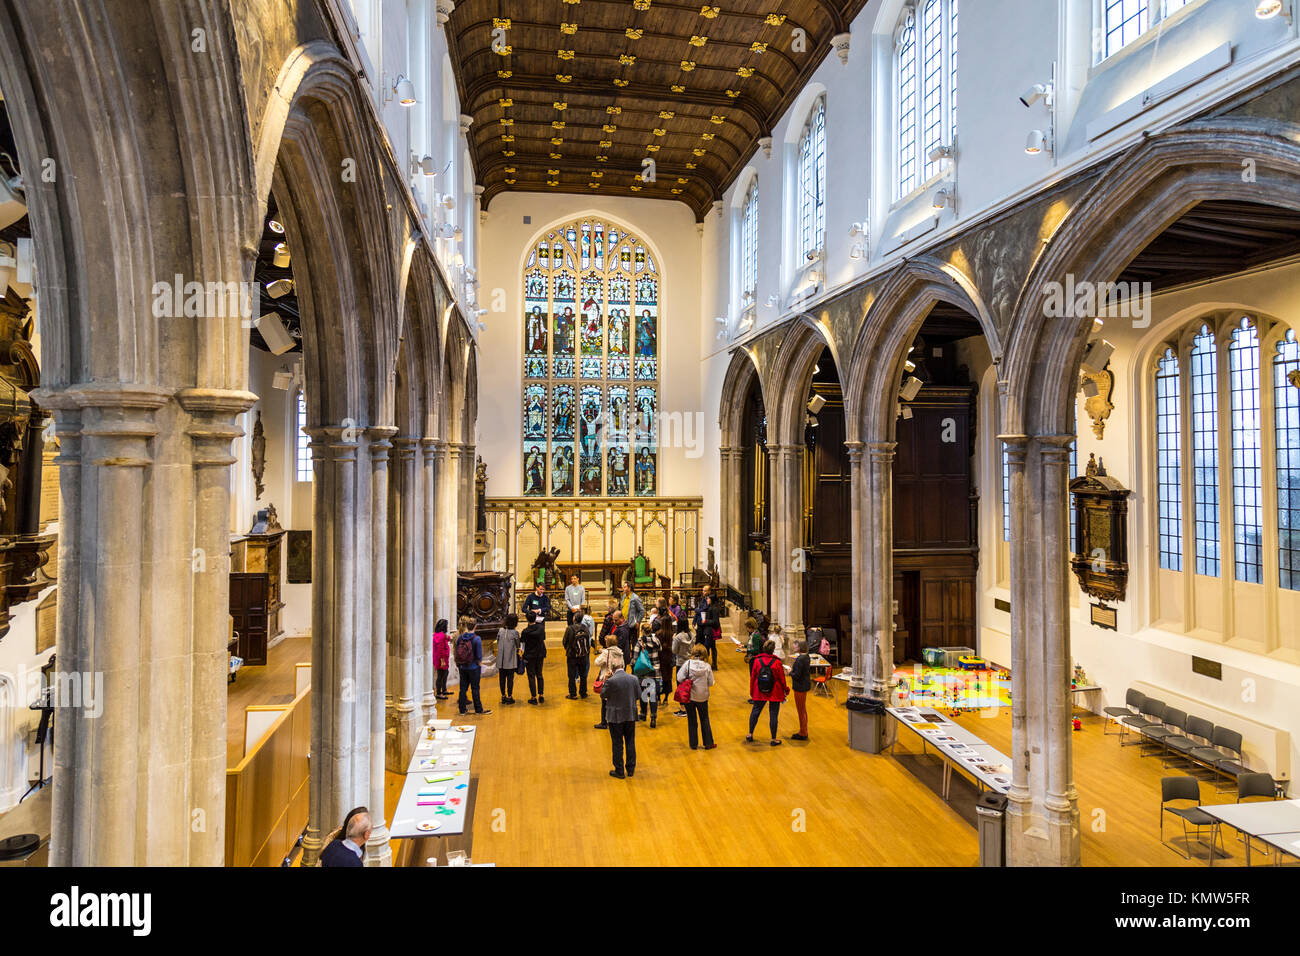 Interior of a small church (St Andrew Undershaft, London, UK) Stock Photo